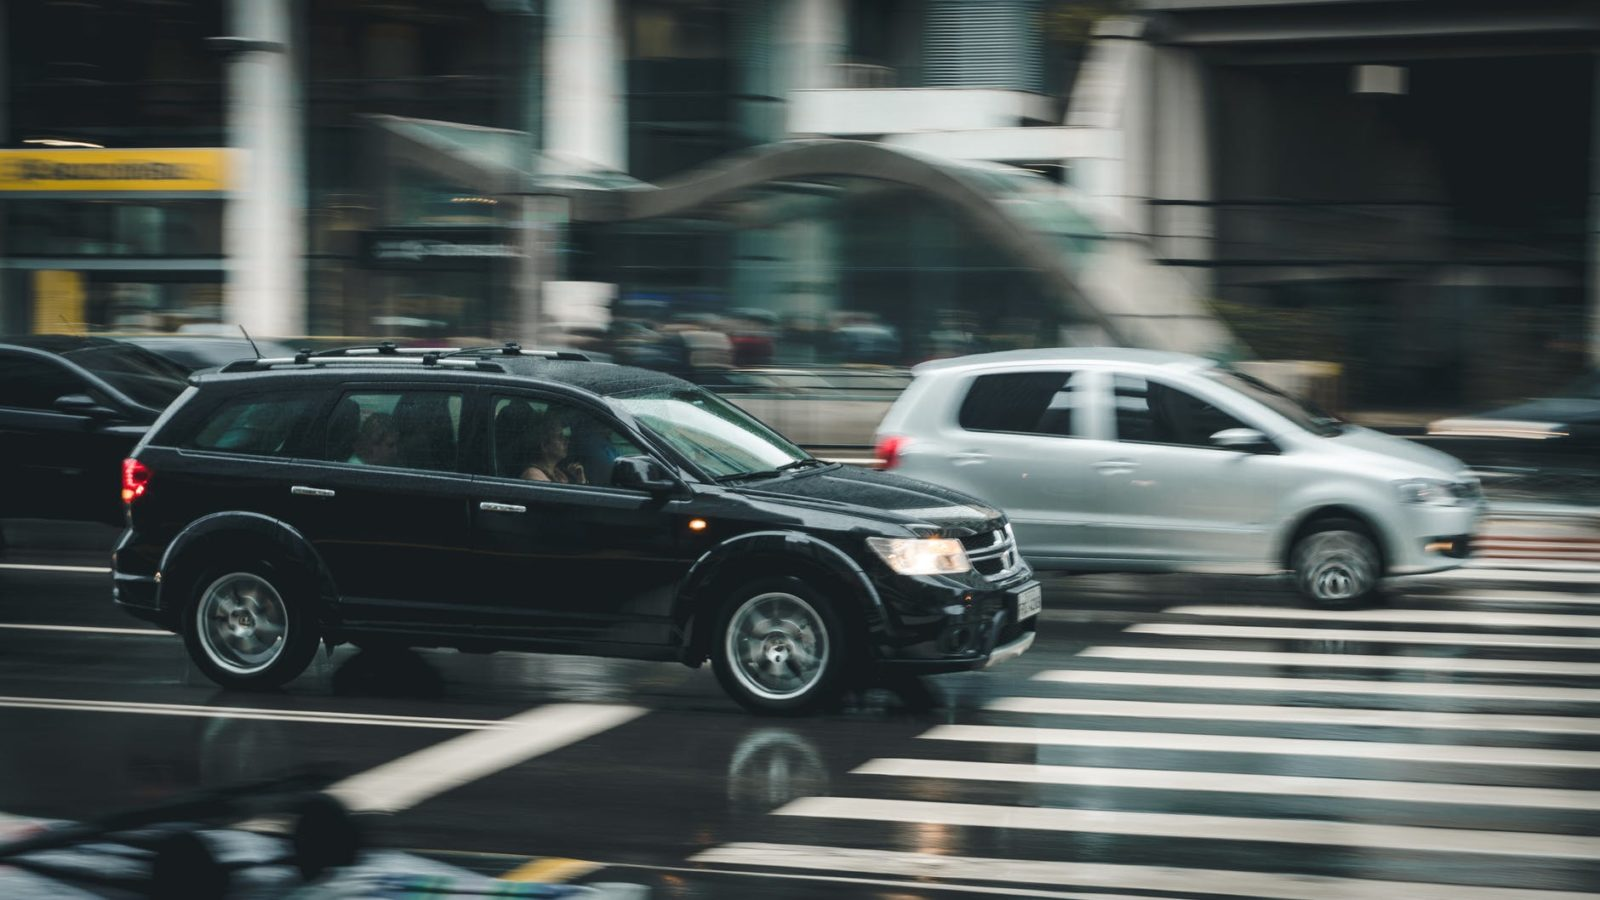 For autonomous vehicles, the road ahead is paved with data